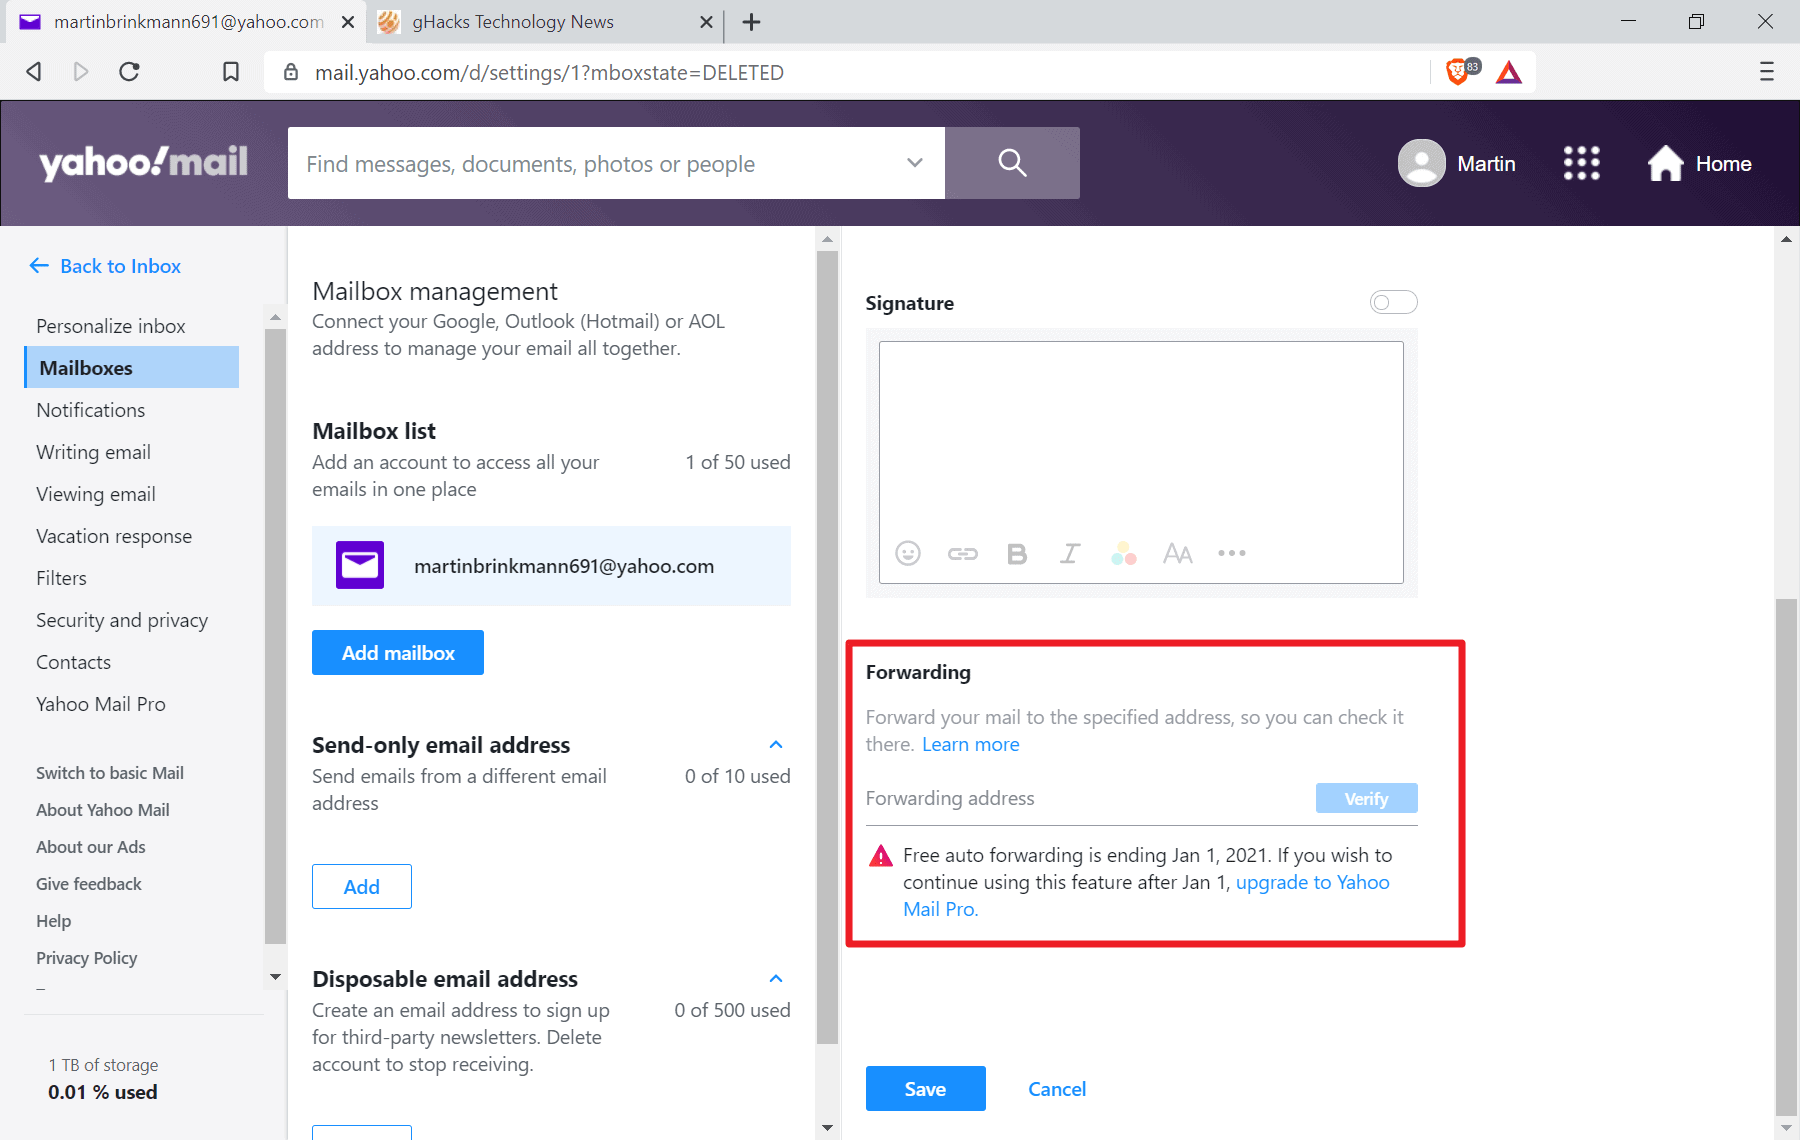 yahoo mail email forwarding dropped